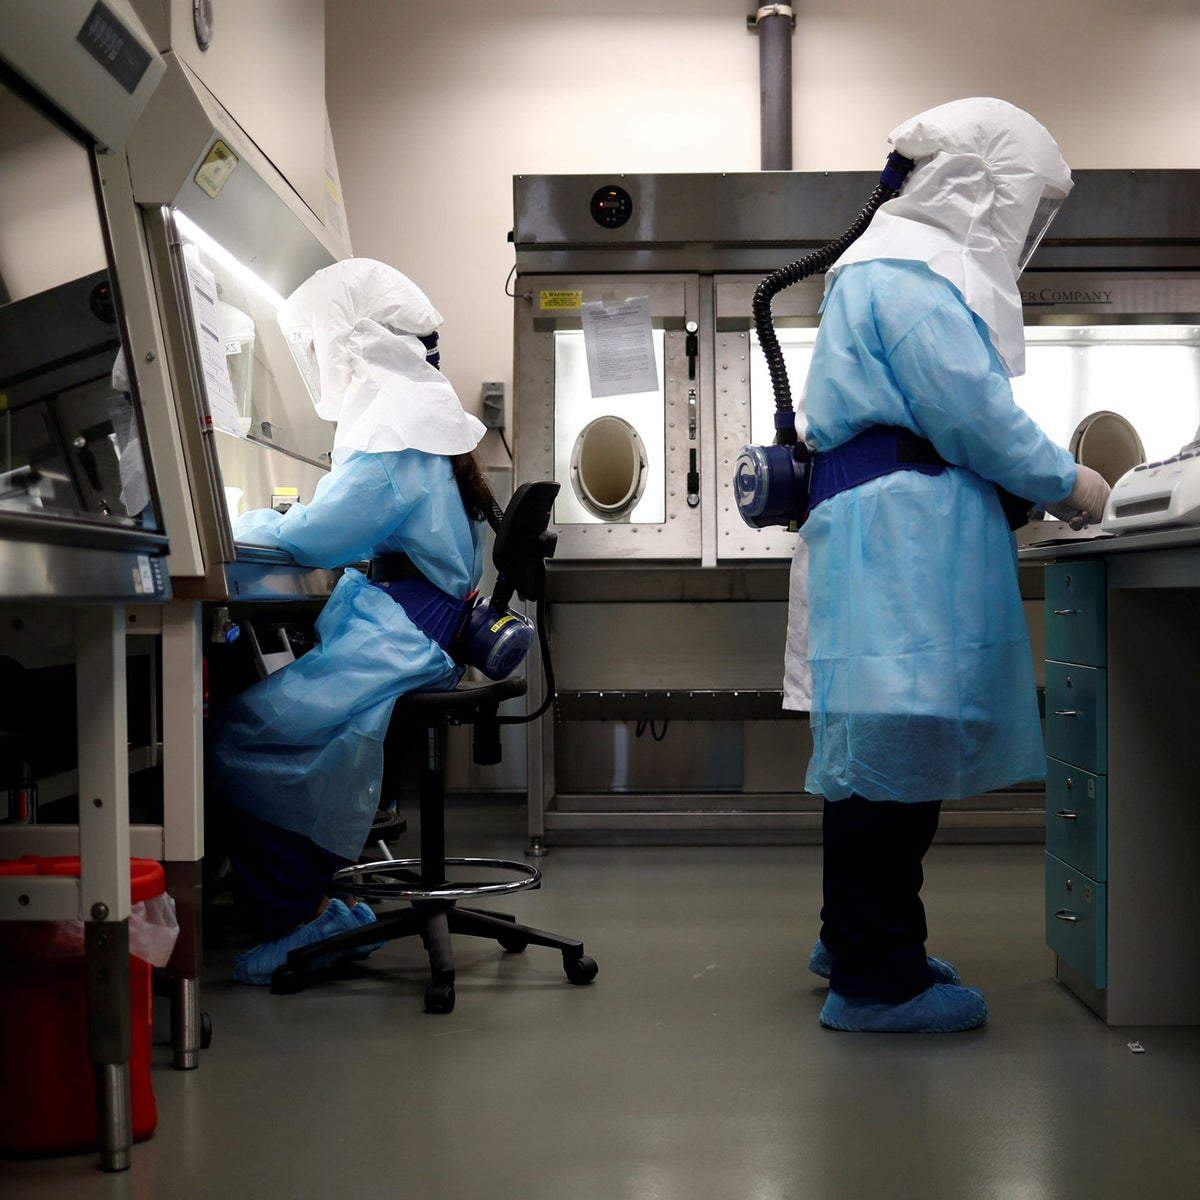 Home Team Science & Technology Agency (HTX) scientists demonstration the test process of their coronavirus test kit at their laboratory in Singapore, March 5, 2020.